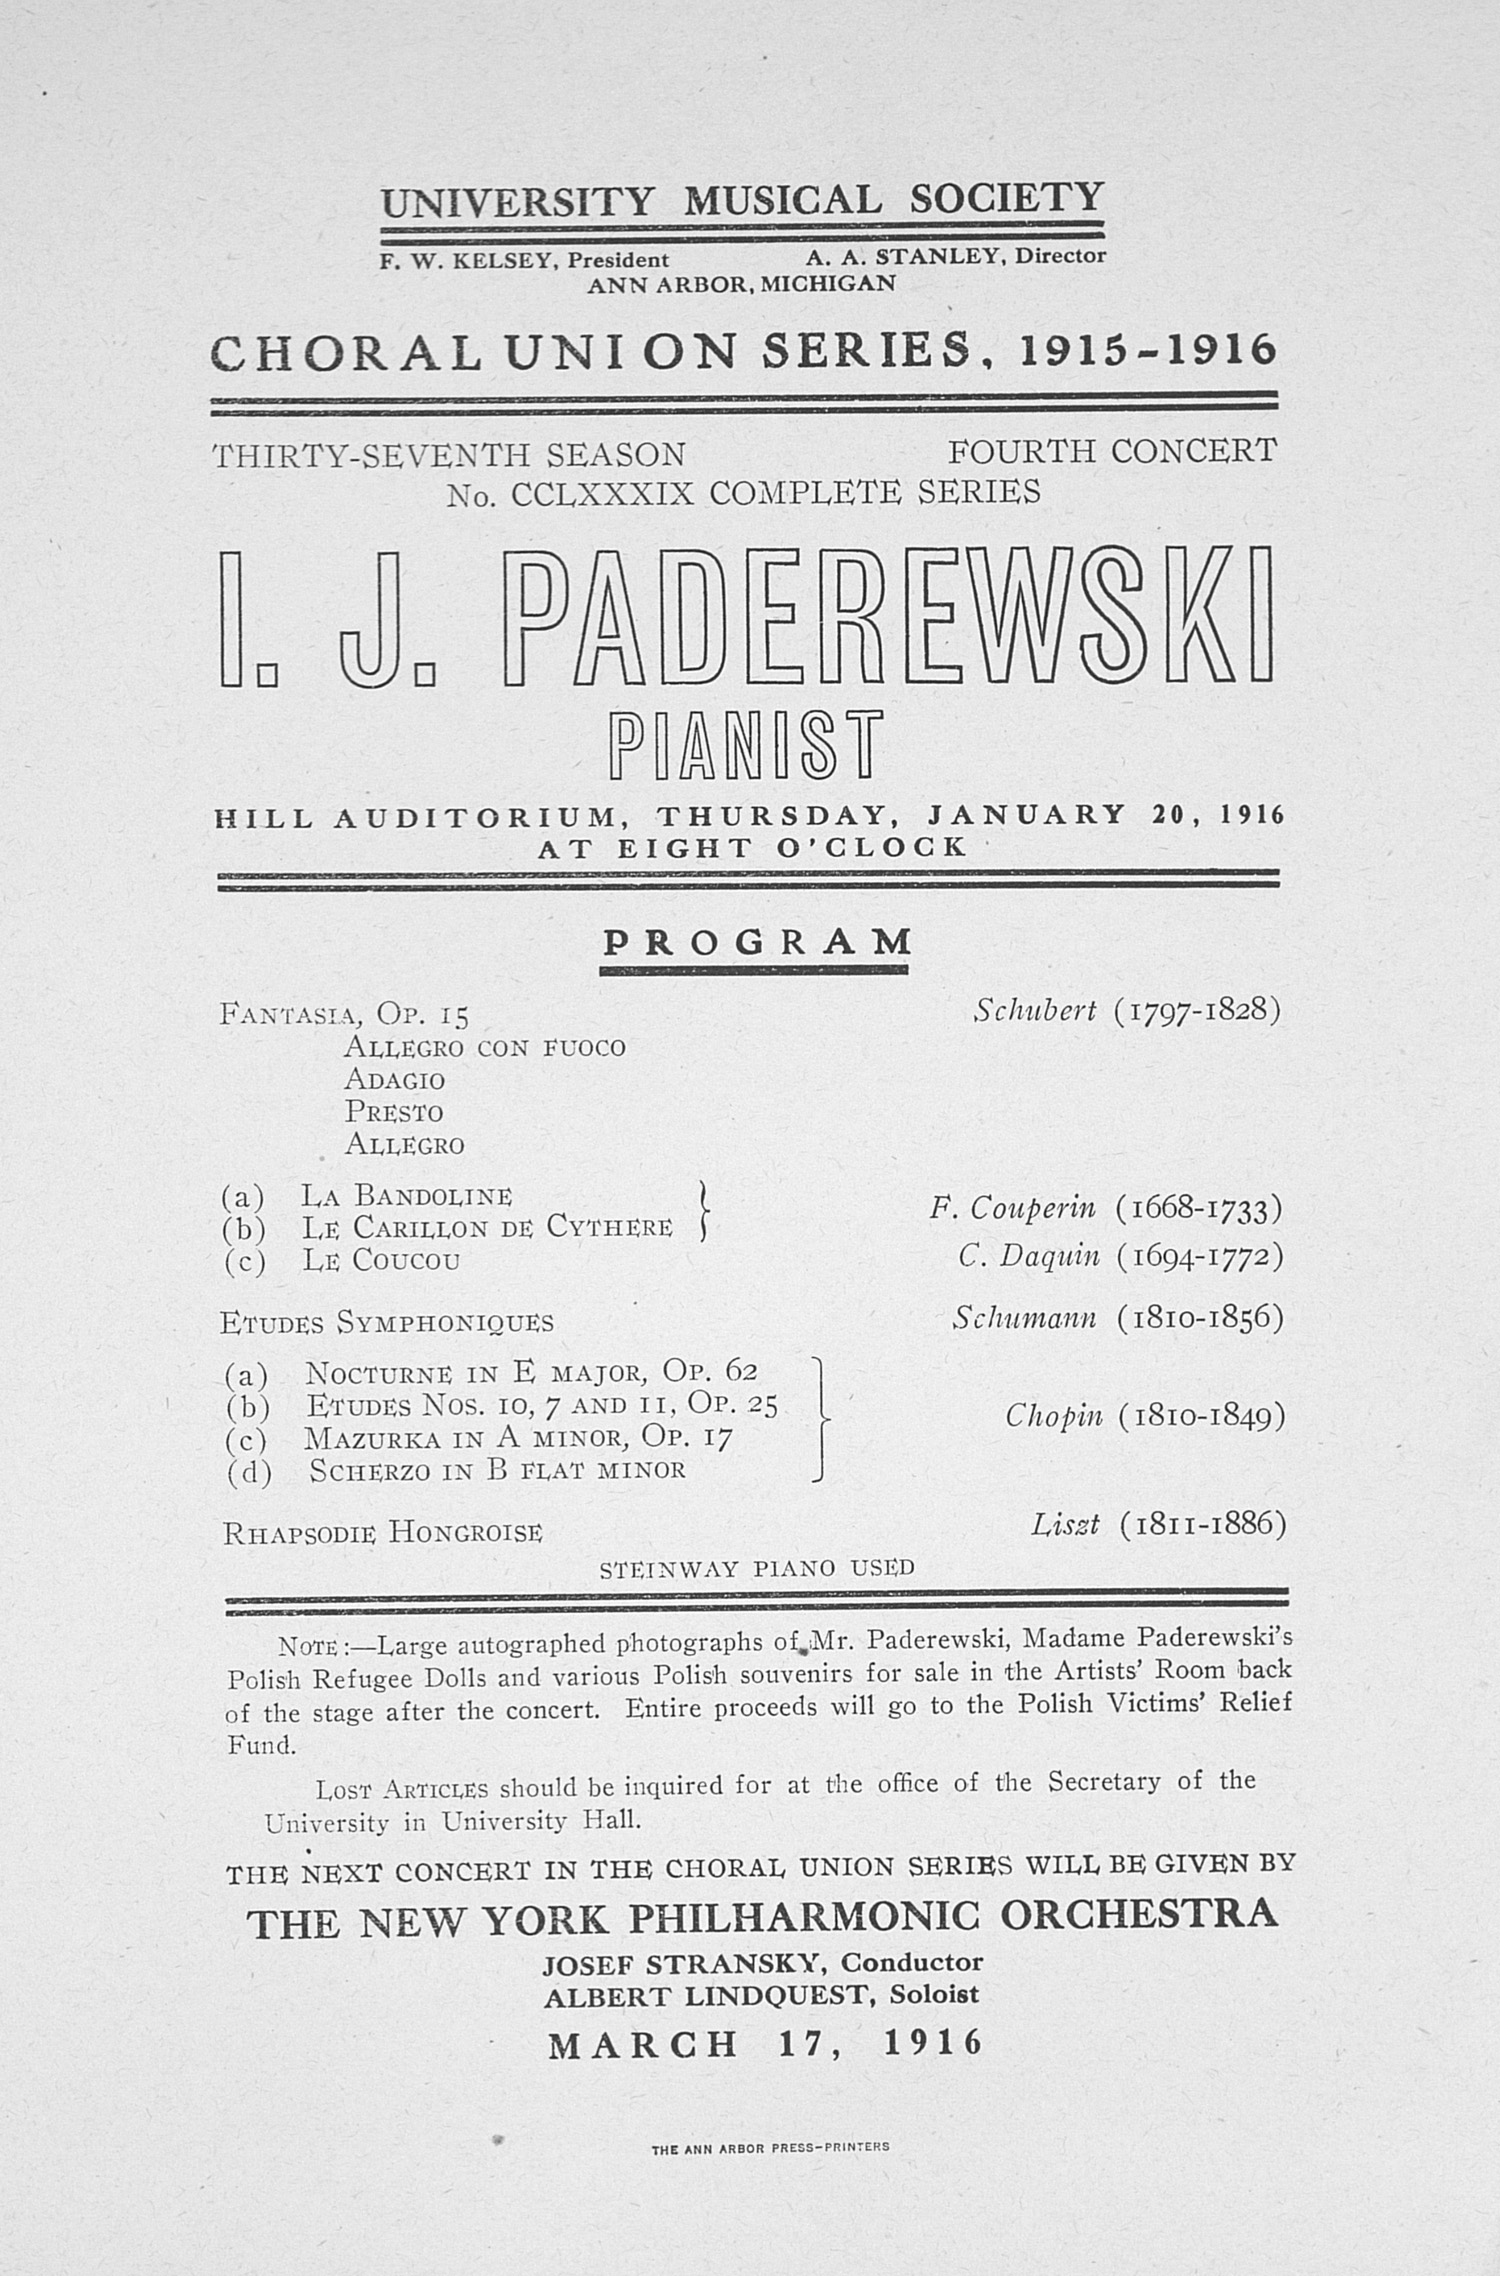 UMS Concert Program, January 20, 1916: Choral Union Series -- I. J. Paderewski  image